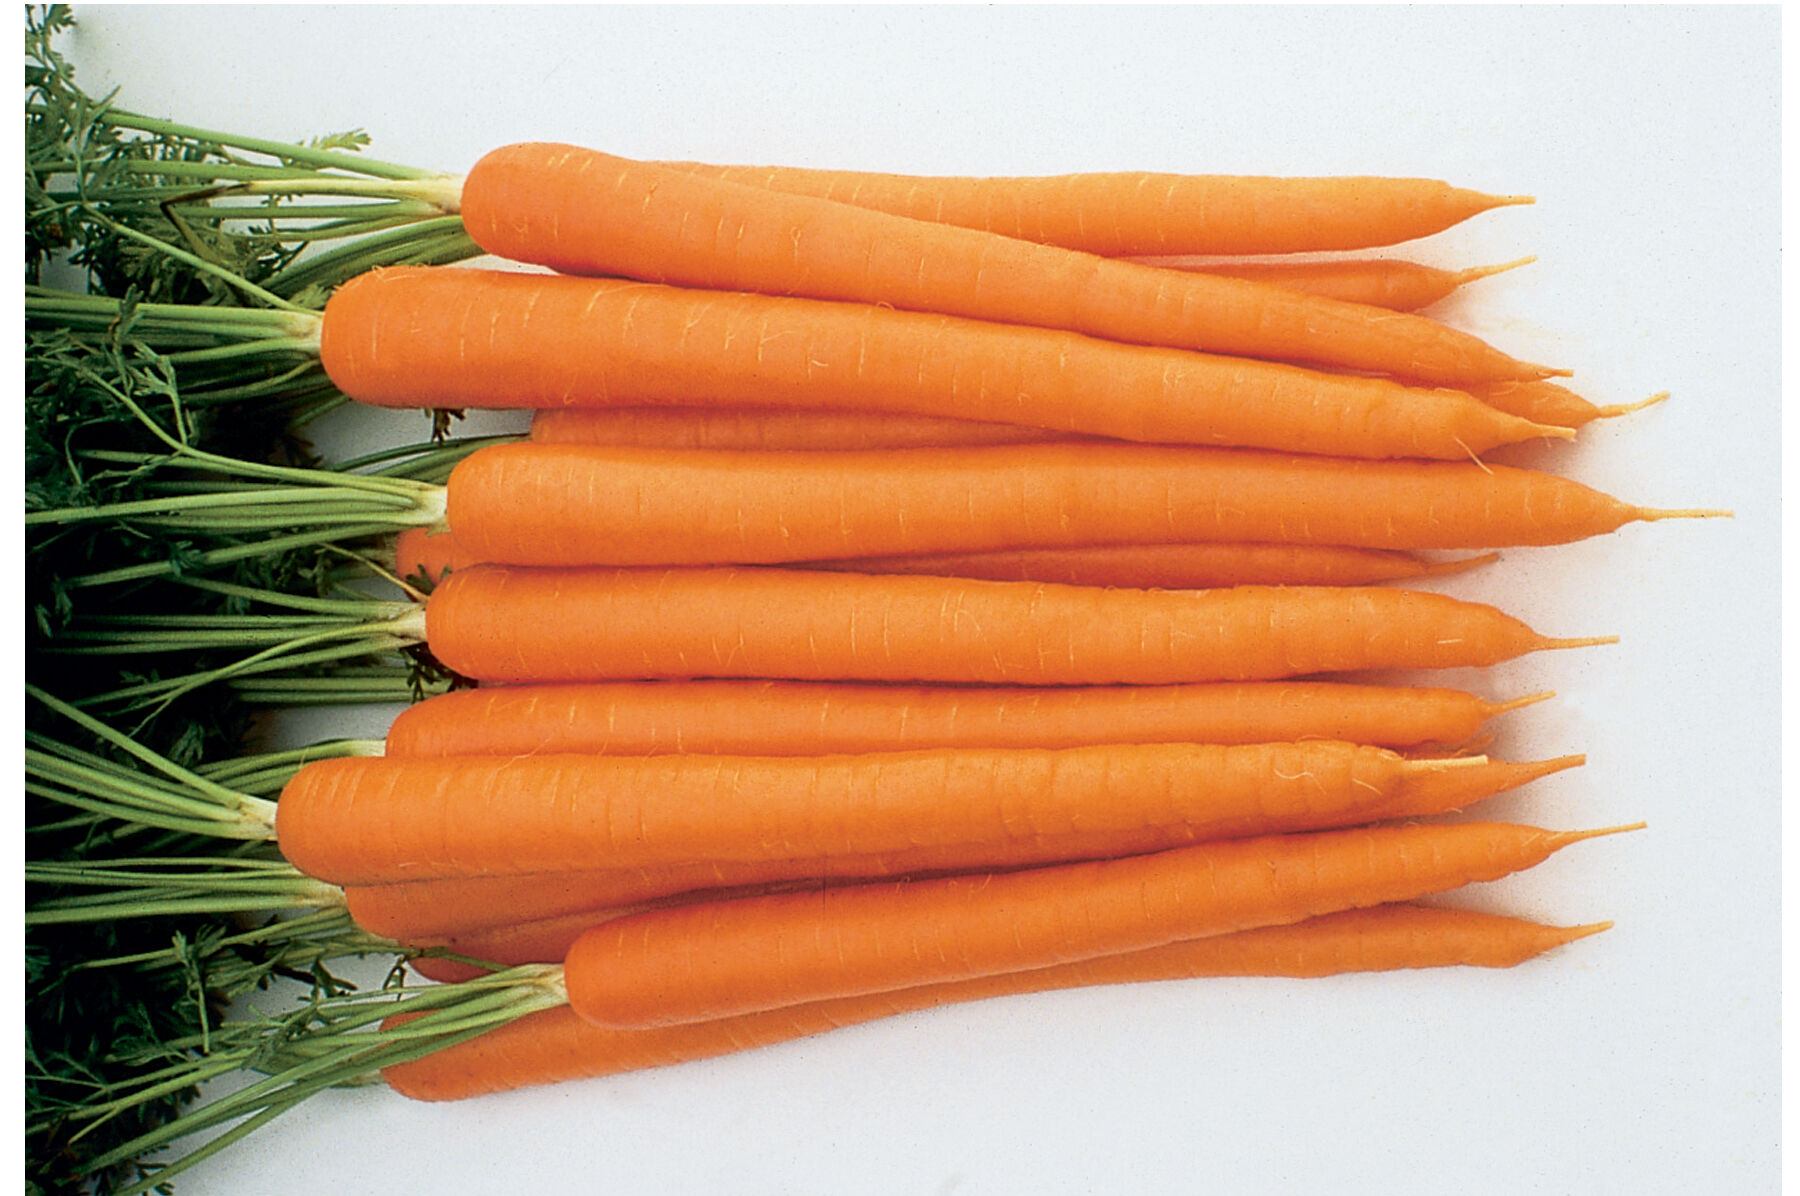 Carrot. Varieties for food, storage and processing 2